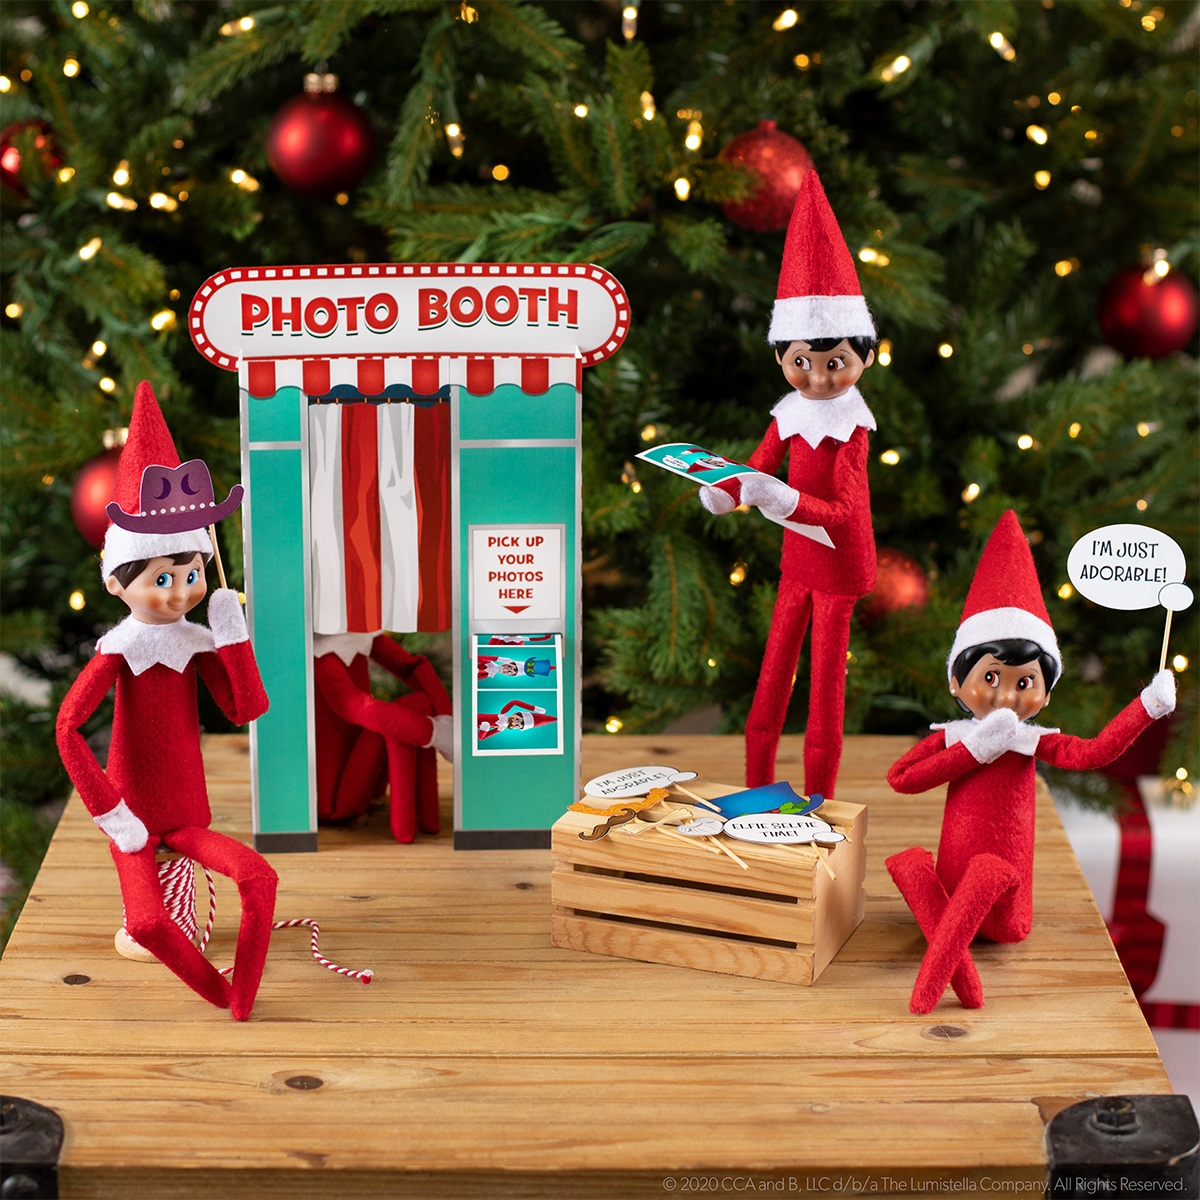 Elf on the Shelf Photo Booth image